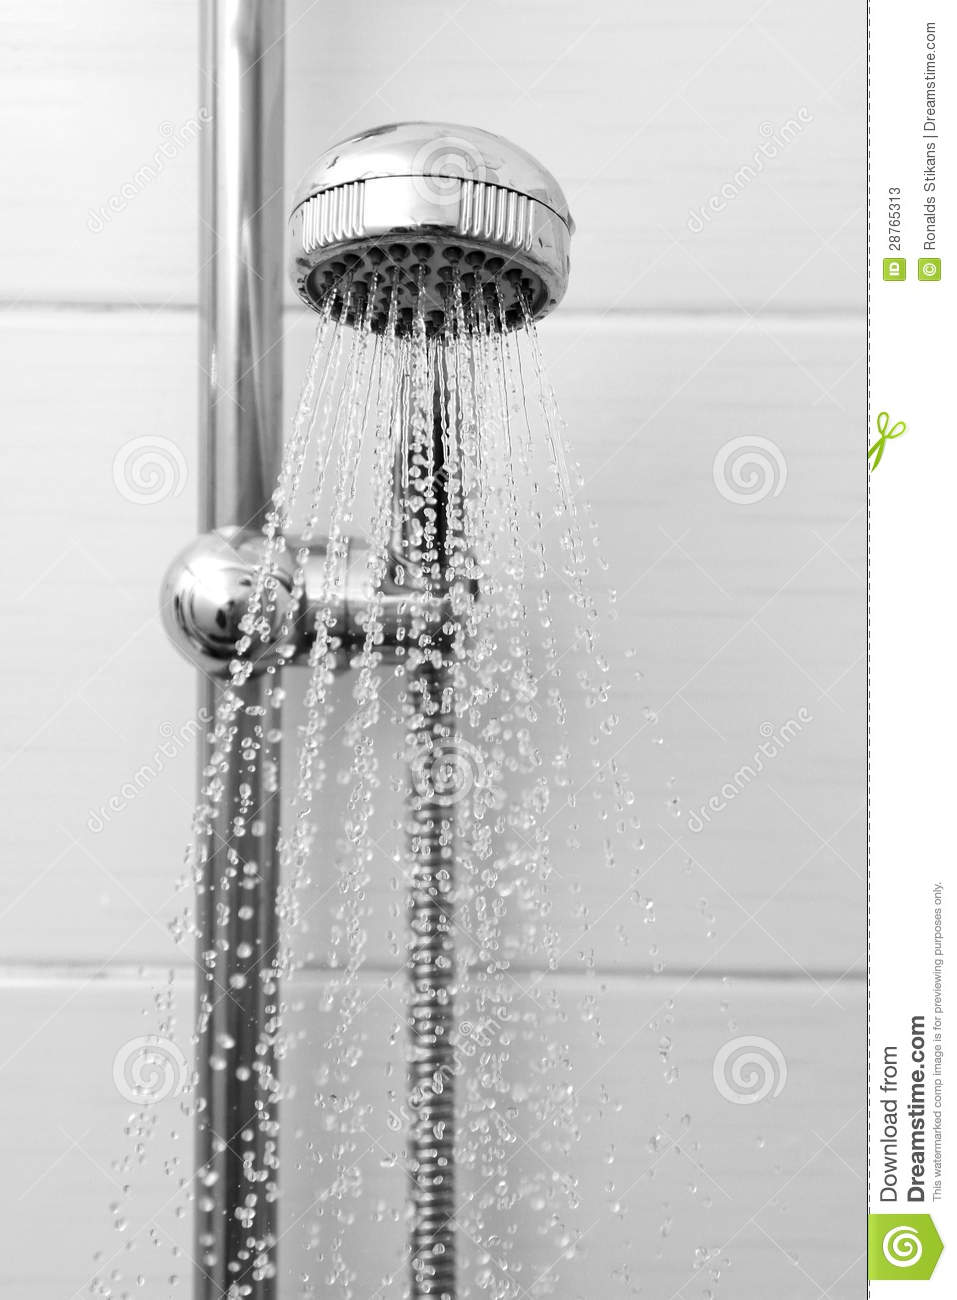 Shower Head With Running Water Stock Photos Image 28765313